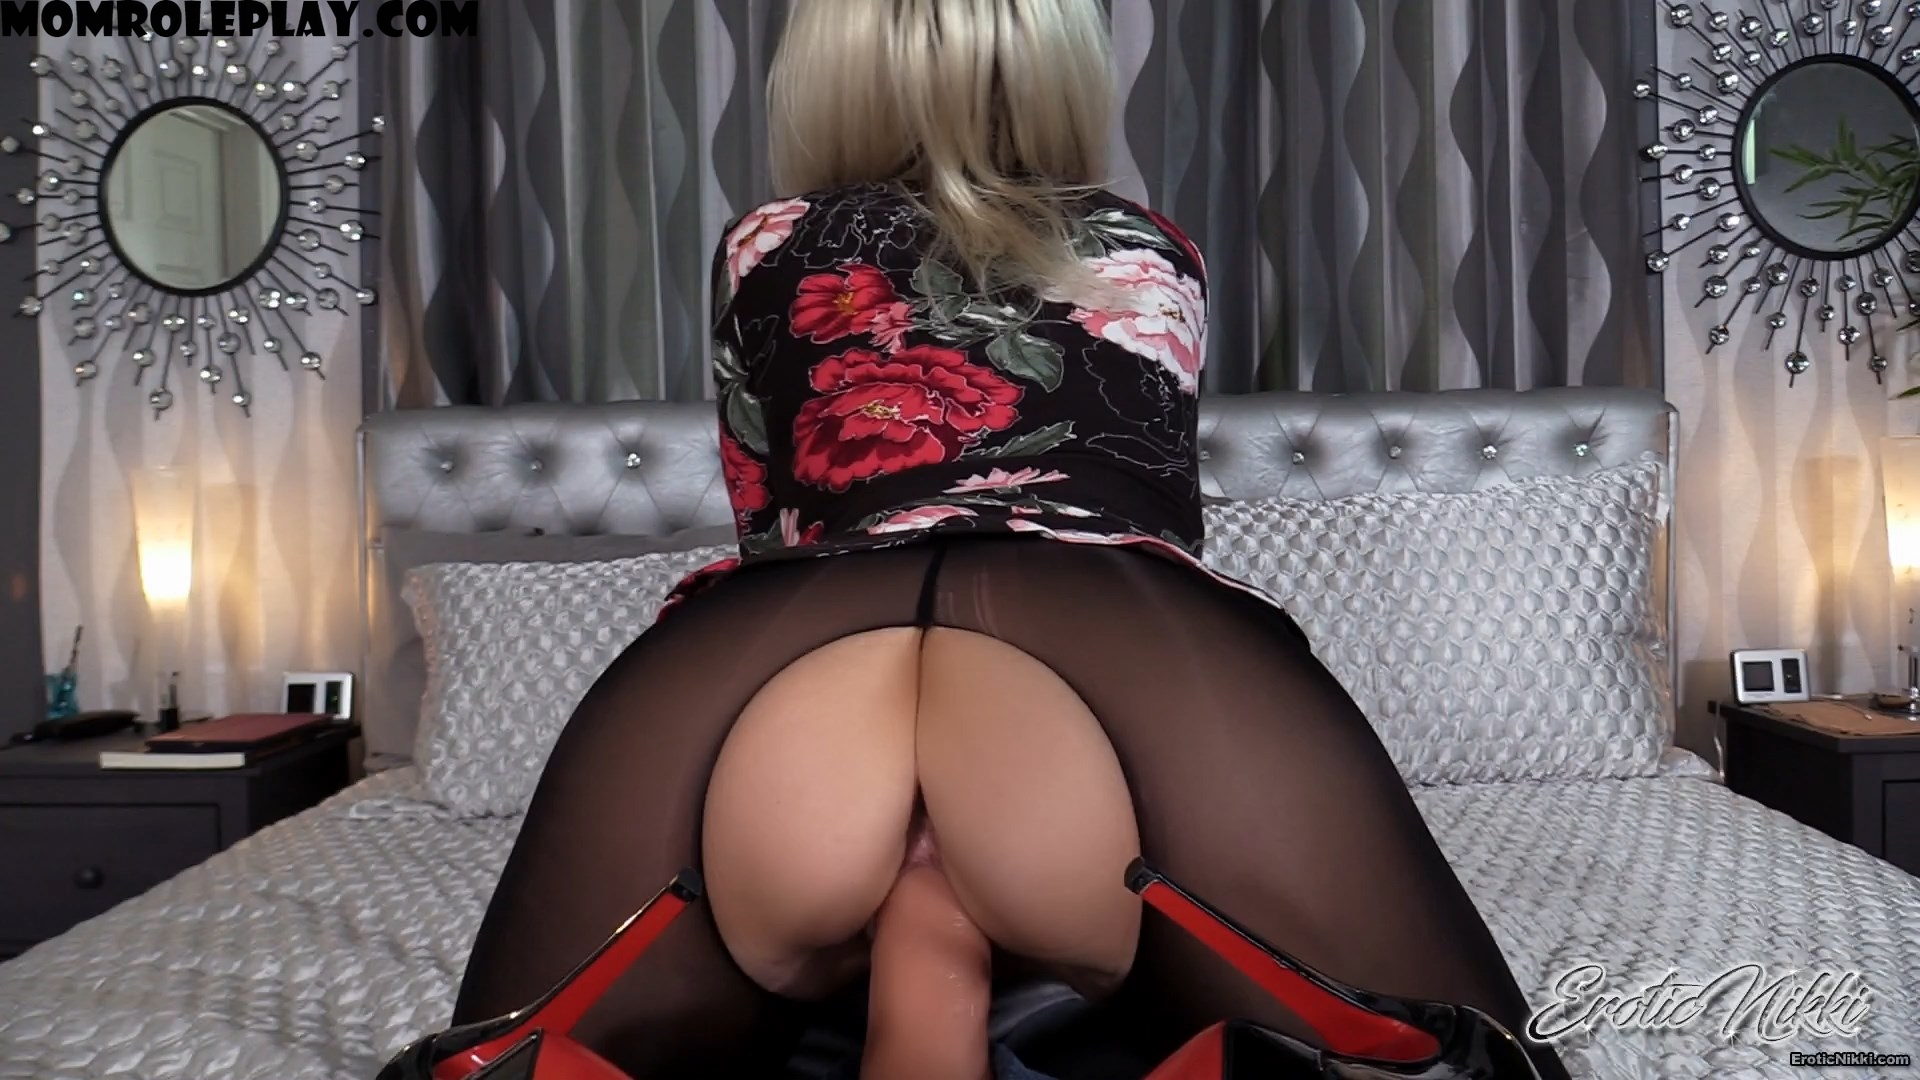 Erotic Nikki - Fetish MILF - StepMom's Magical Pussy MP4-HD 1080p